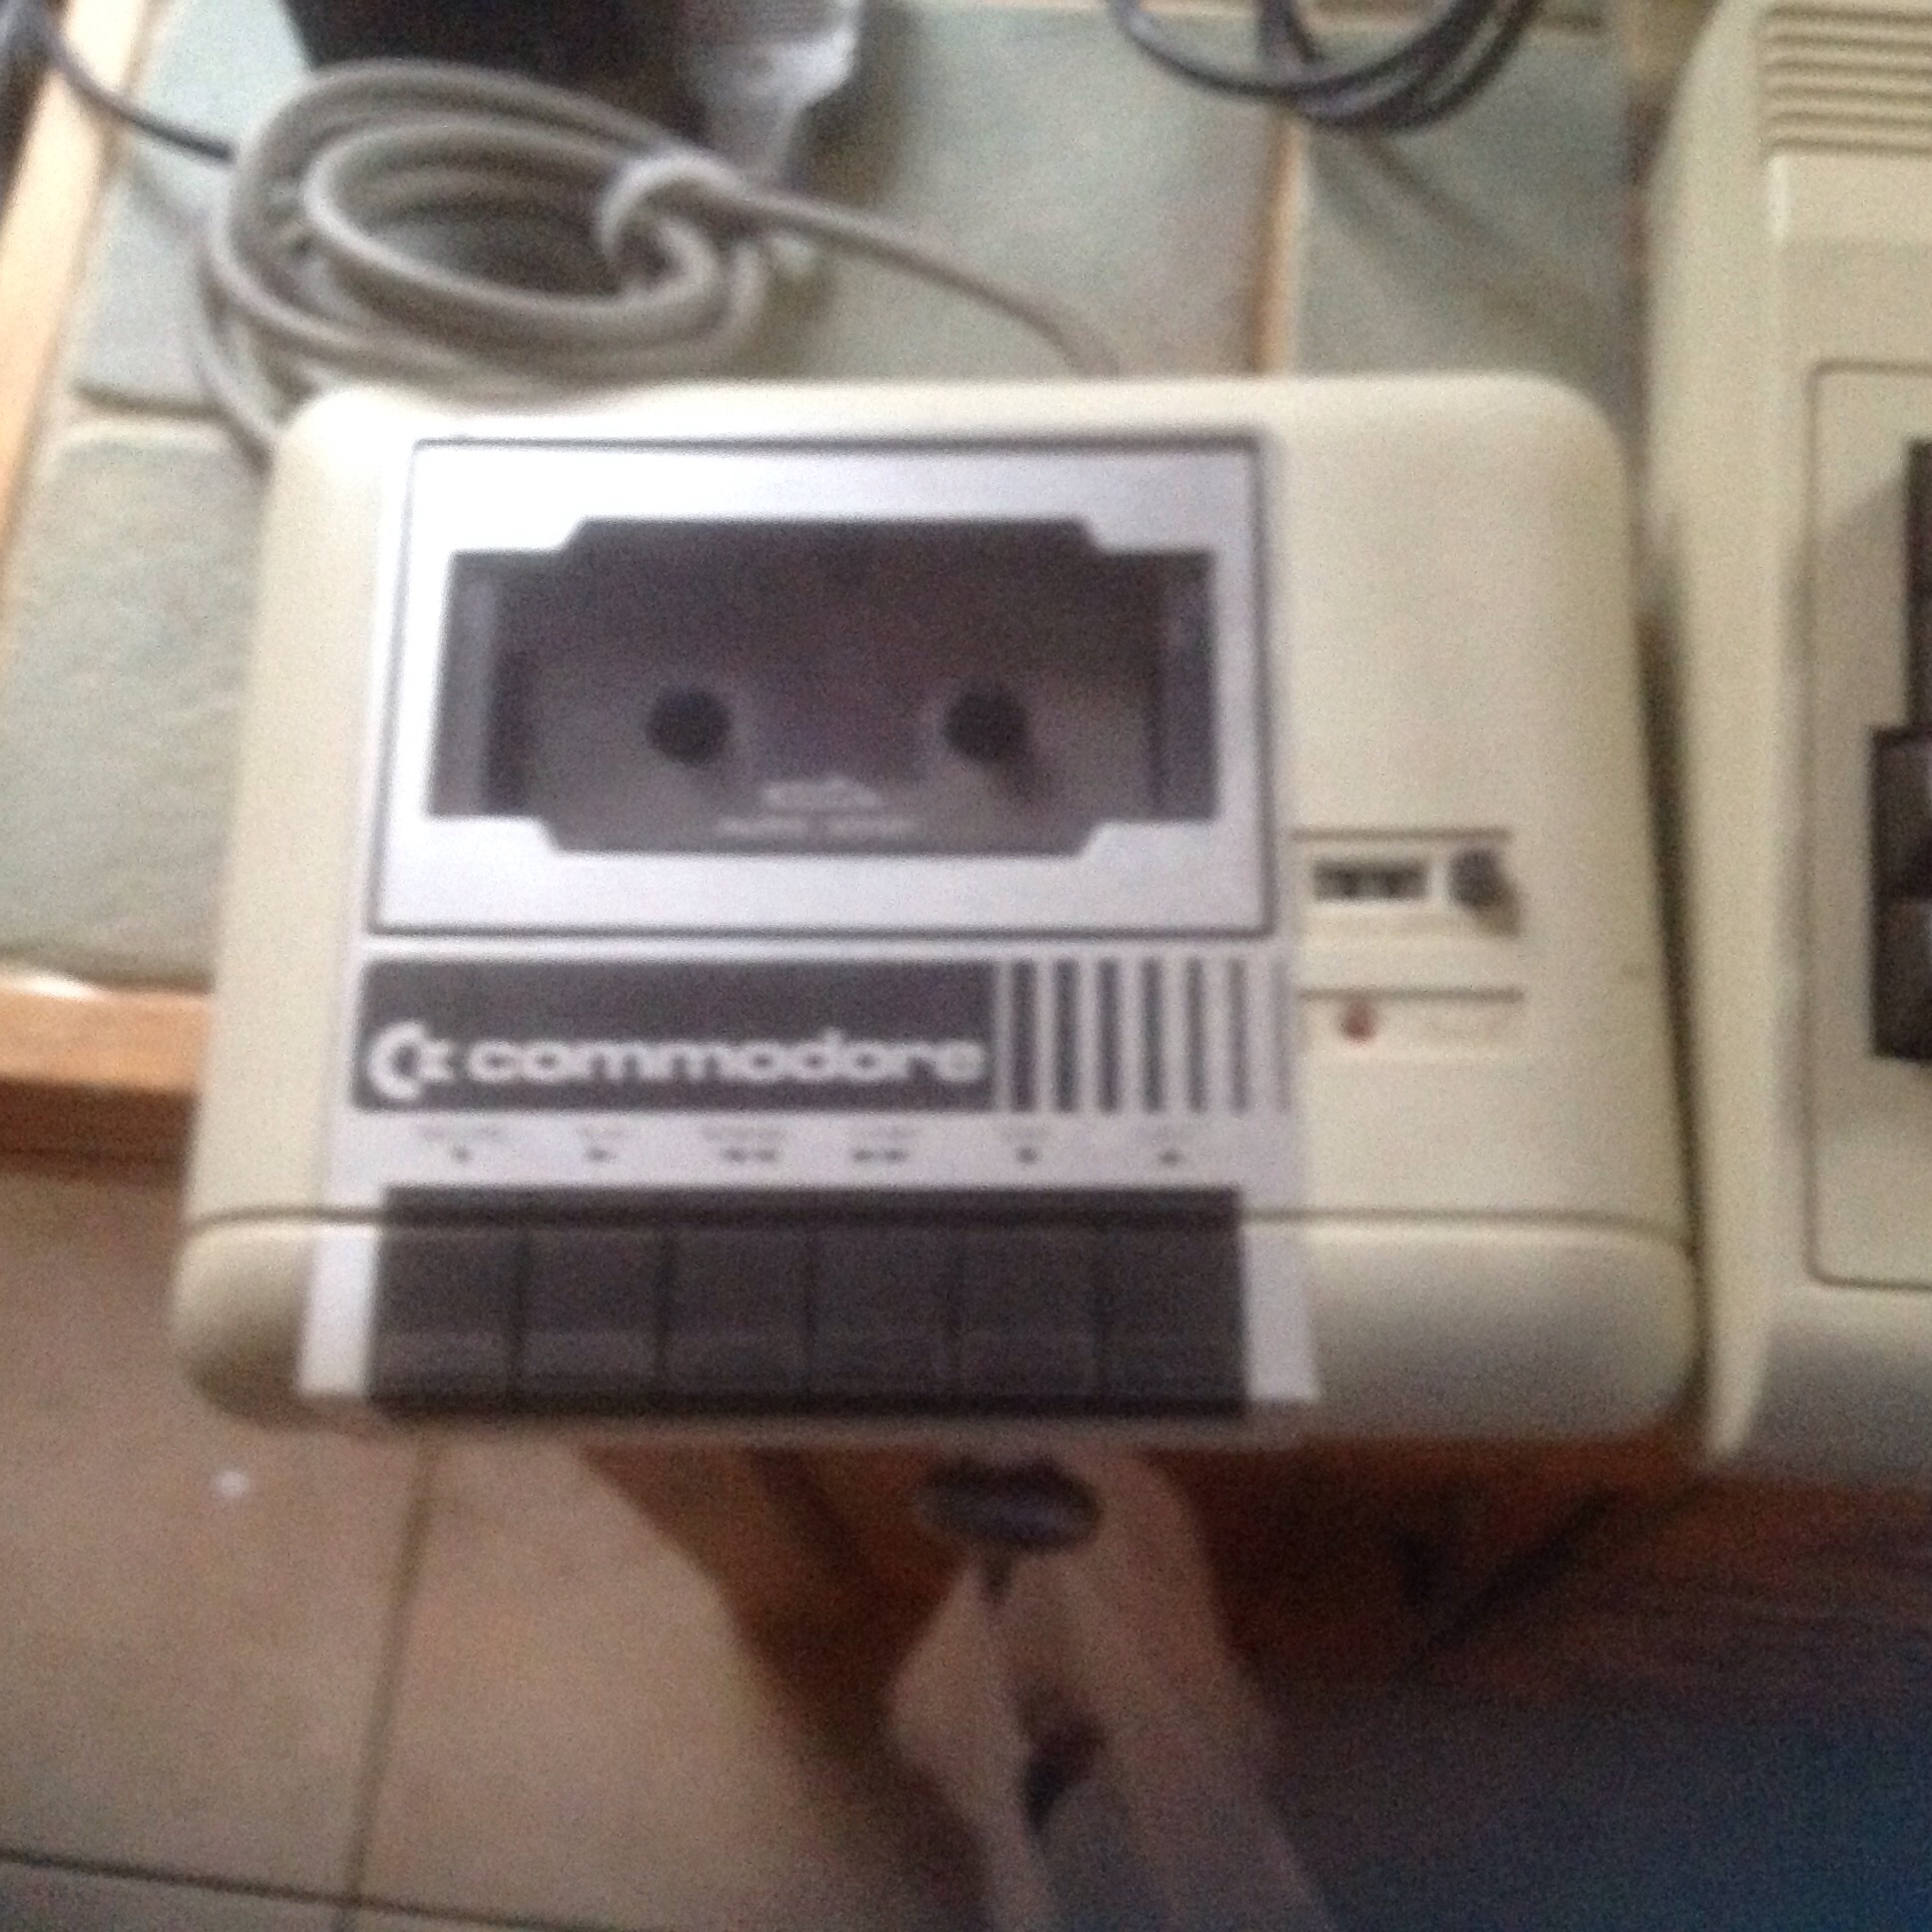 vic 20 tape deck